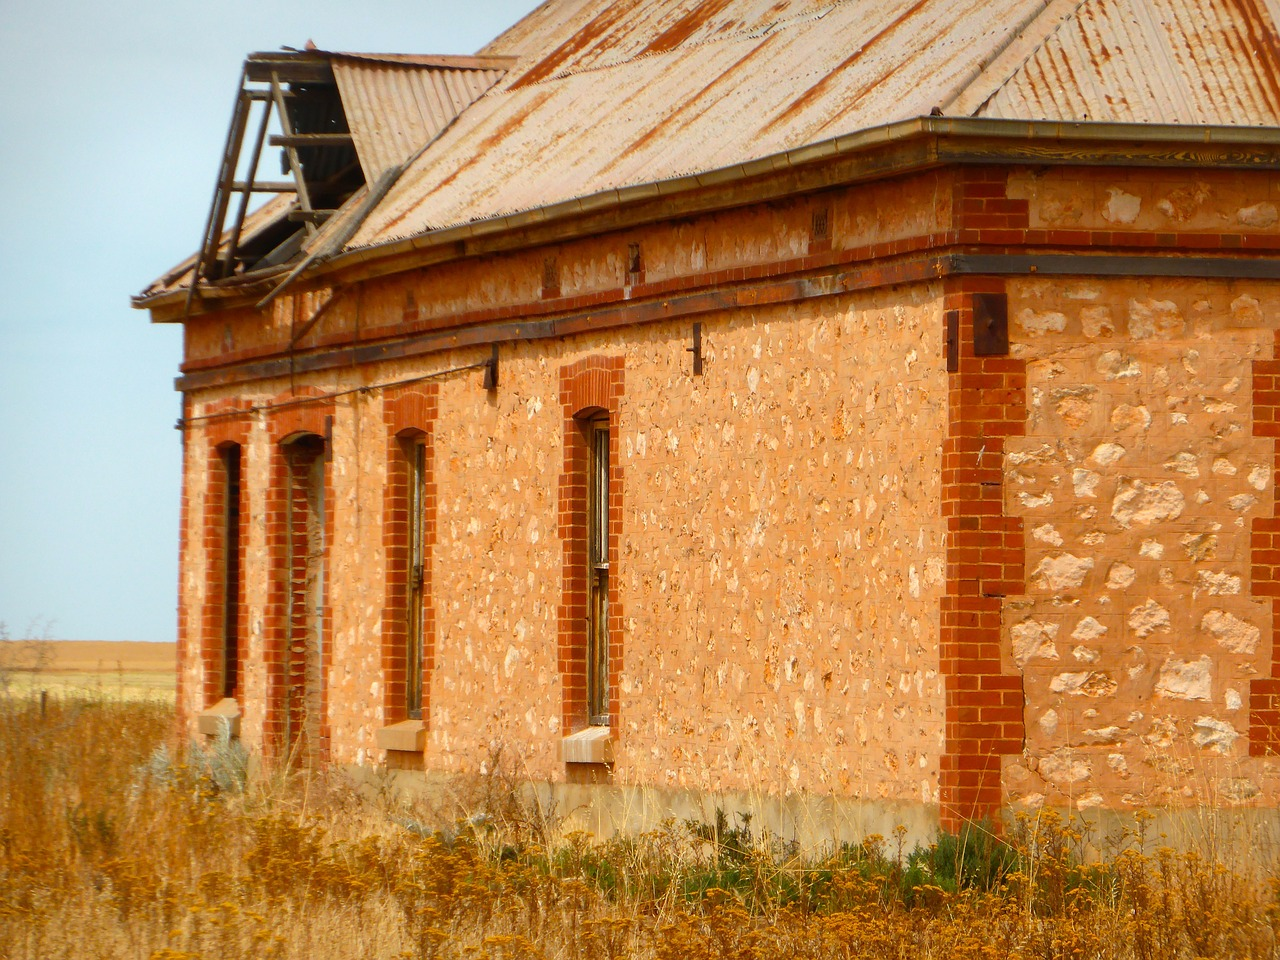 Derelict,abandoned,house,exterior,rustic - free photo from needpix com